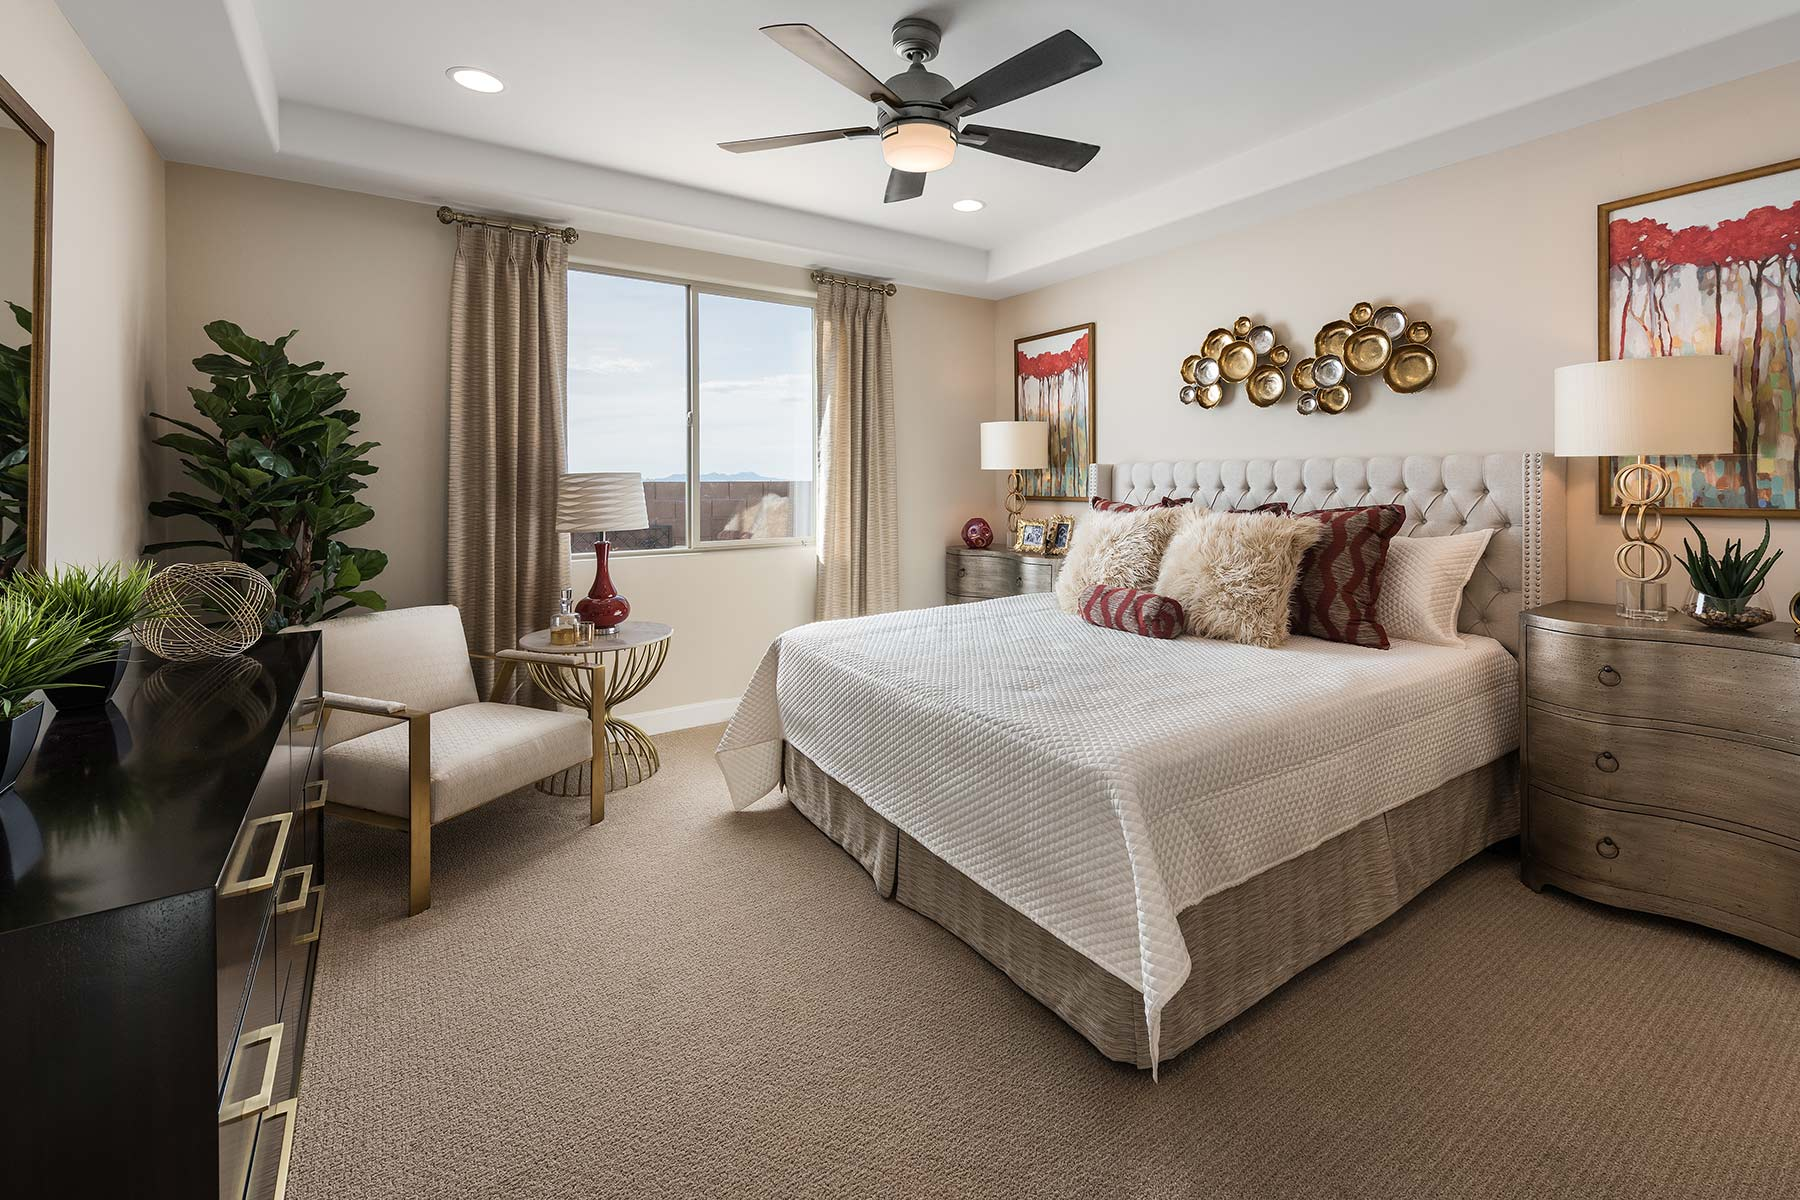 Agave Plan Bedroom at Saguaro Trails in Tucson Arizona by Mattamy Homes